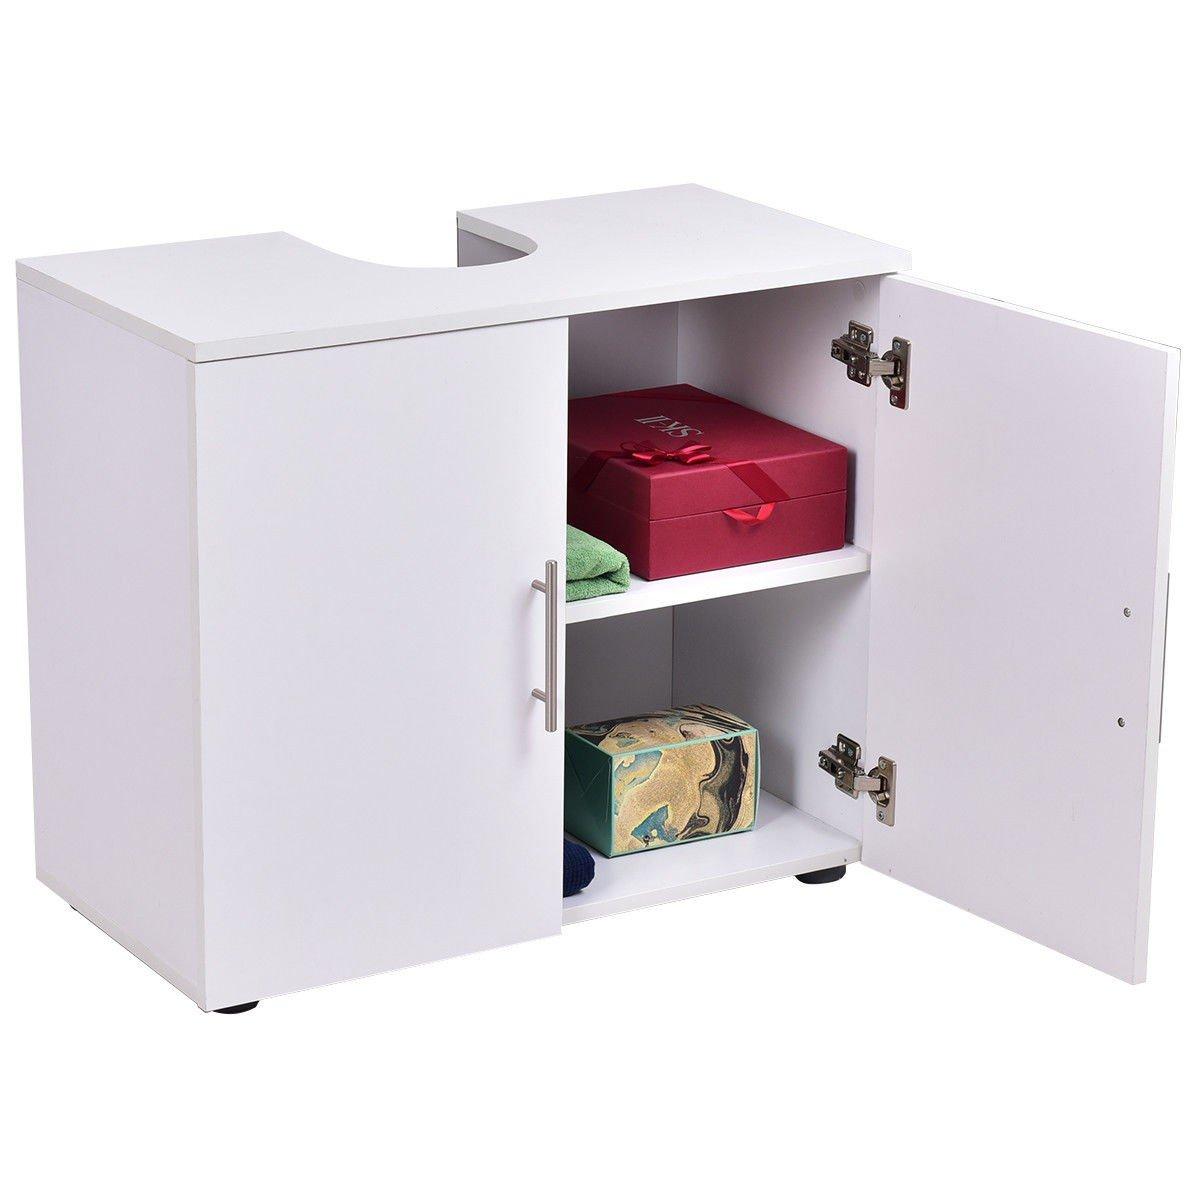 White Non Pedestal Under Sink Bathroom Storage Vanity Organizer Kitchen Cabinet 2 Door 2 Tier